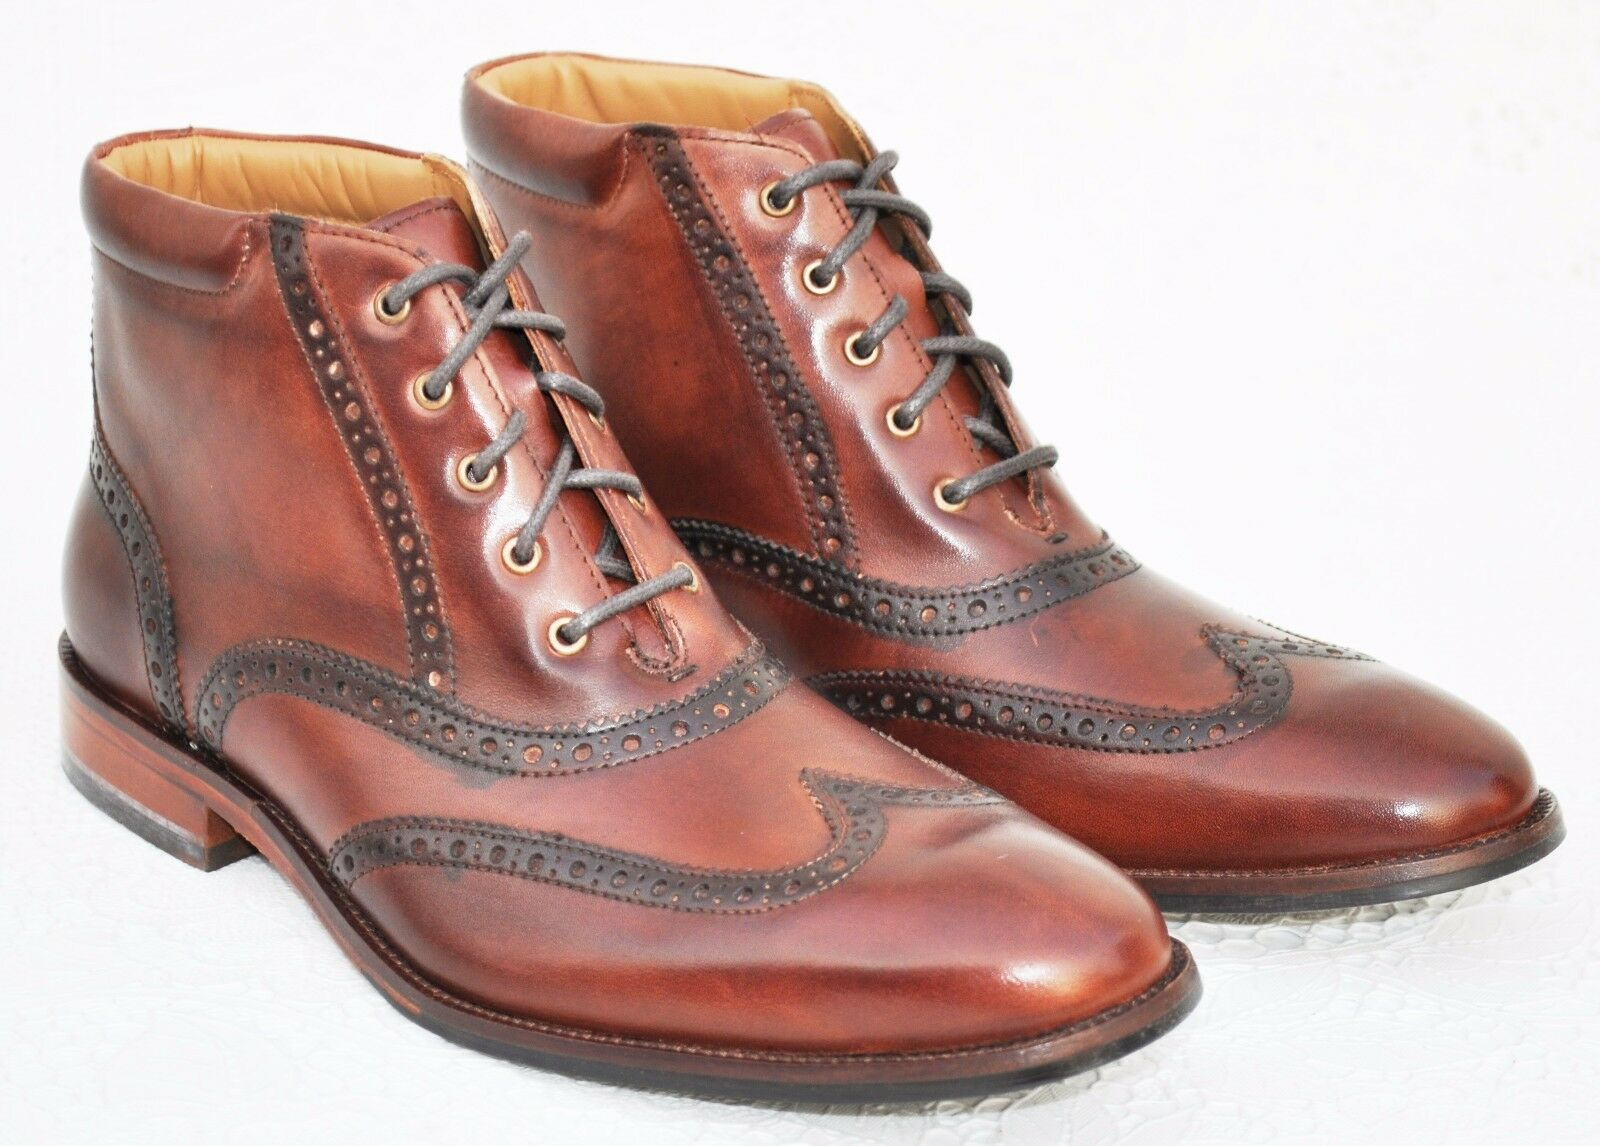 Cole Haan Men's Williams Wingtip Boot, Polisander color, Size 8 US, MSRP